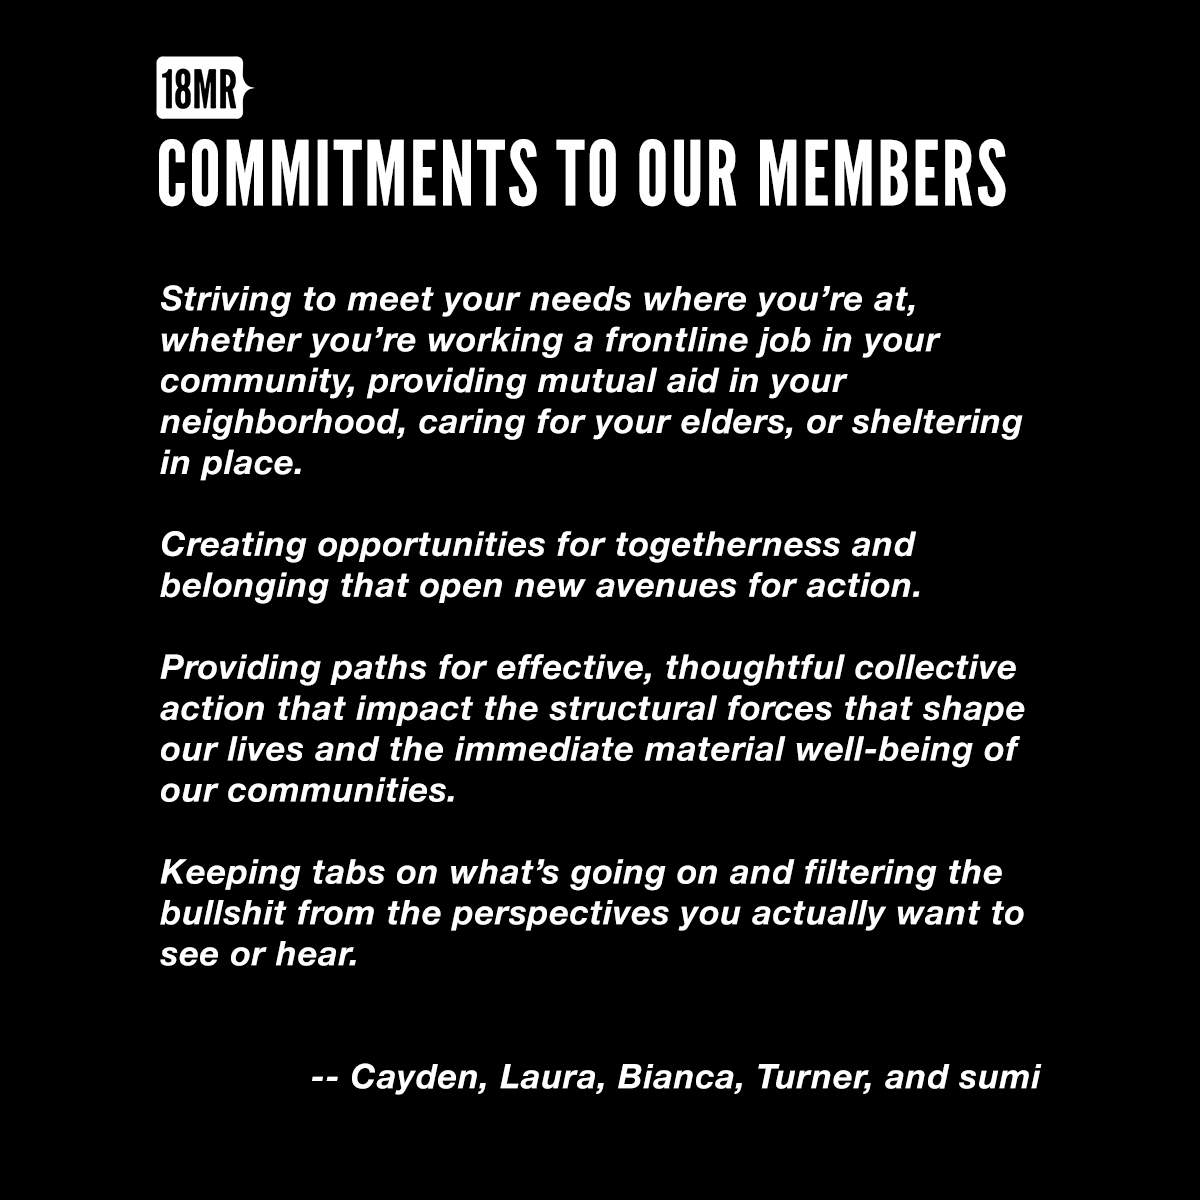 Our Commitments to Our Members - Striving to meet your needs where you're at, whether you're working a frontline job in your community, providing mutual aid in your neighborhood, caring for your elders, or sheltering in place.- Creating opportunities for togetherness and belonging that open new avenues for action. -Providing paths for effective, thoughtful collective action that impact the structural forces that shape our lives and the immediate material well-being of our communities. - Keeping tabs on what's going on and filtering the bullshit from the perspectives you actually want to see or hear.